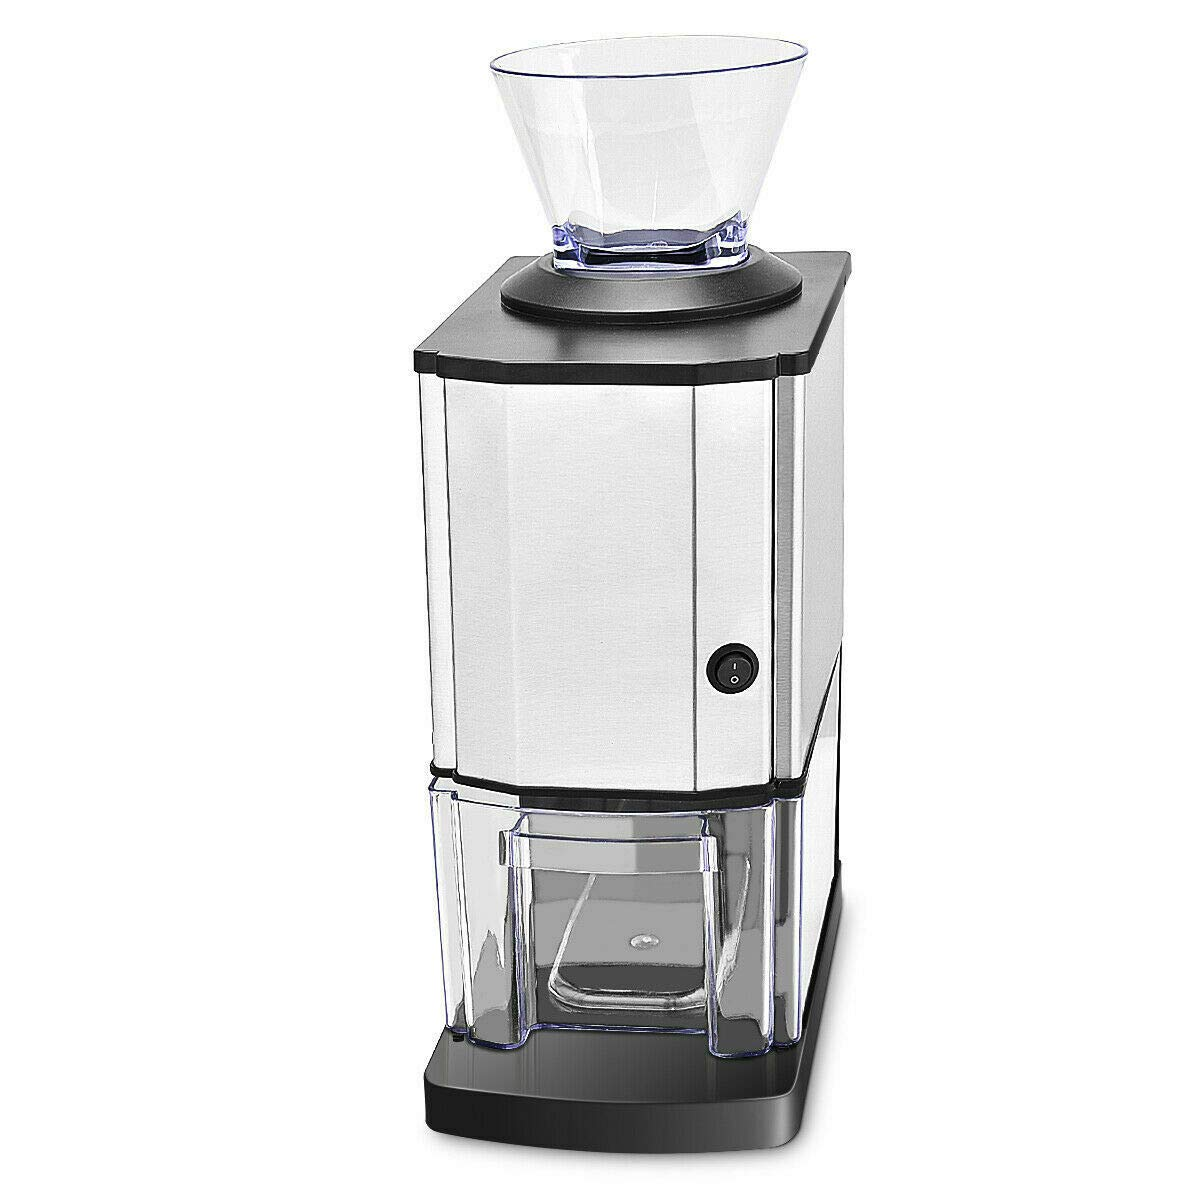 PNPGlobal Tabletop Electric Stainless Steel Ice Crusher Shaver Machine Crushed Ice Maker